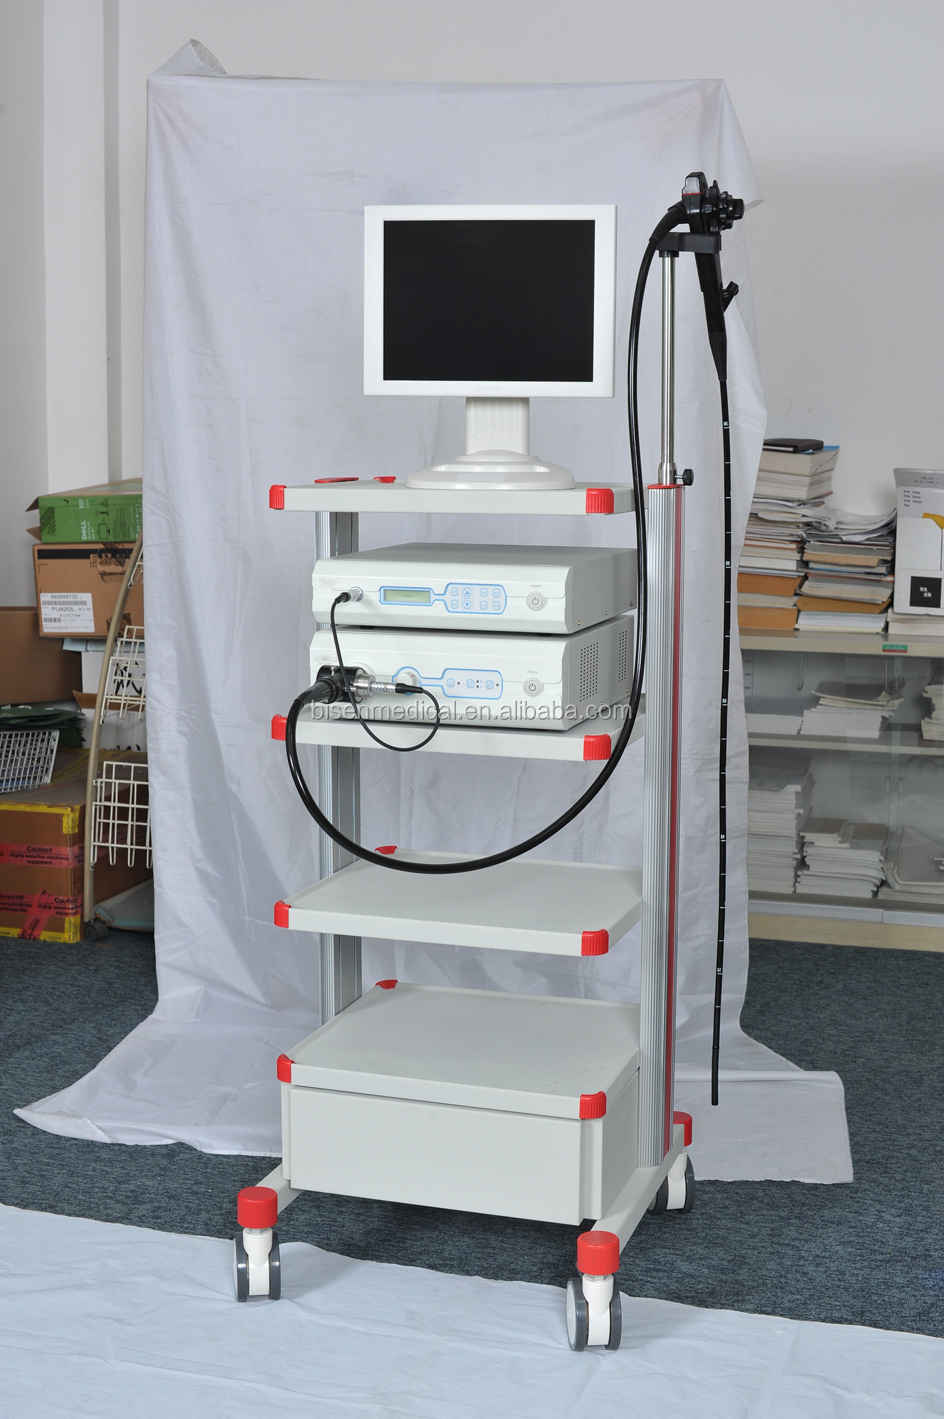 Endoscopy Cleaning Room: Bs-vep2100 High Class Video Endoscope System With High